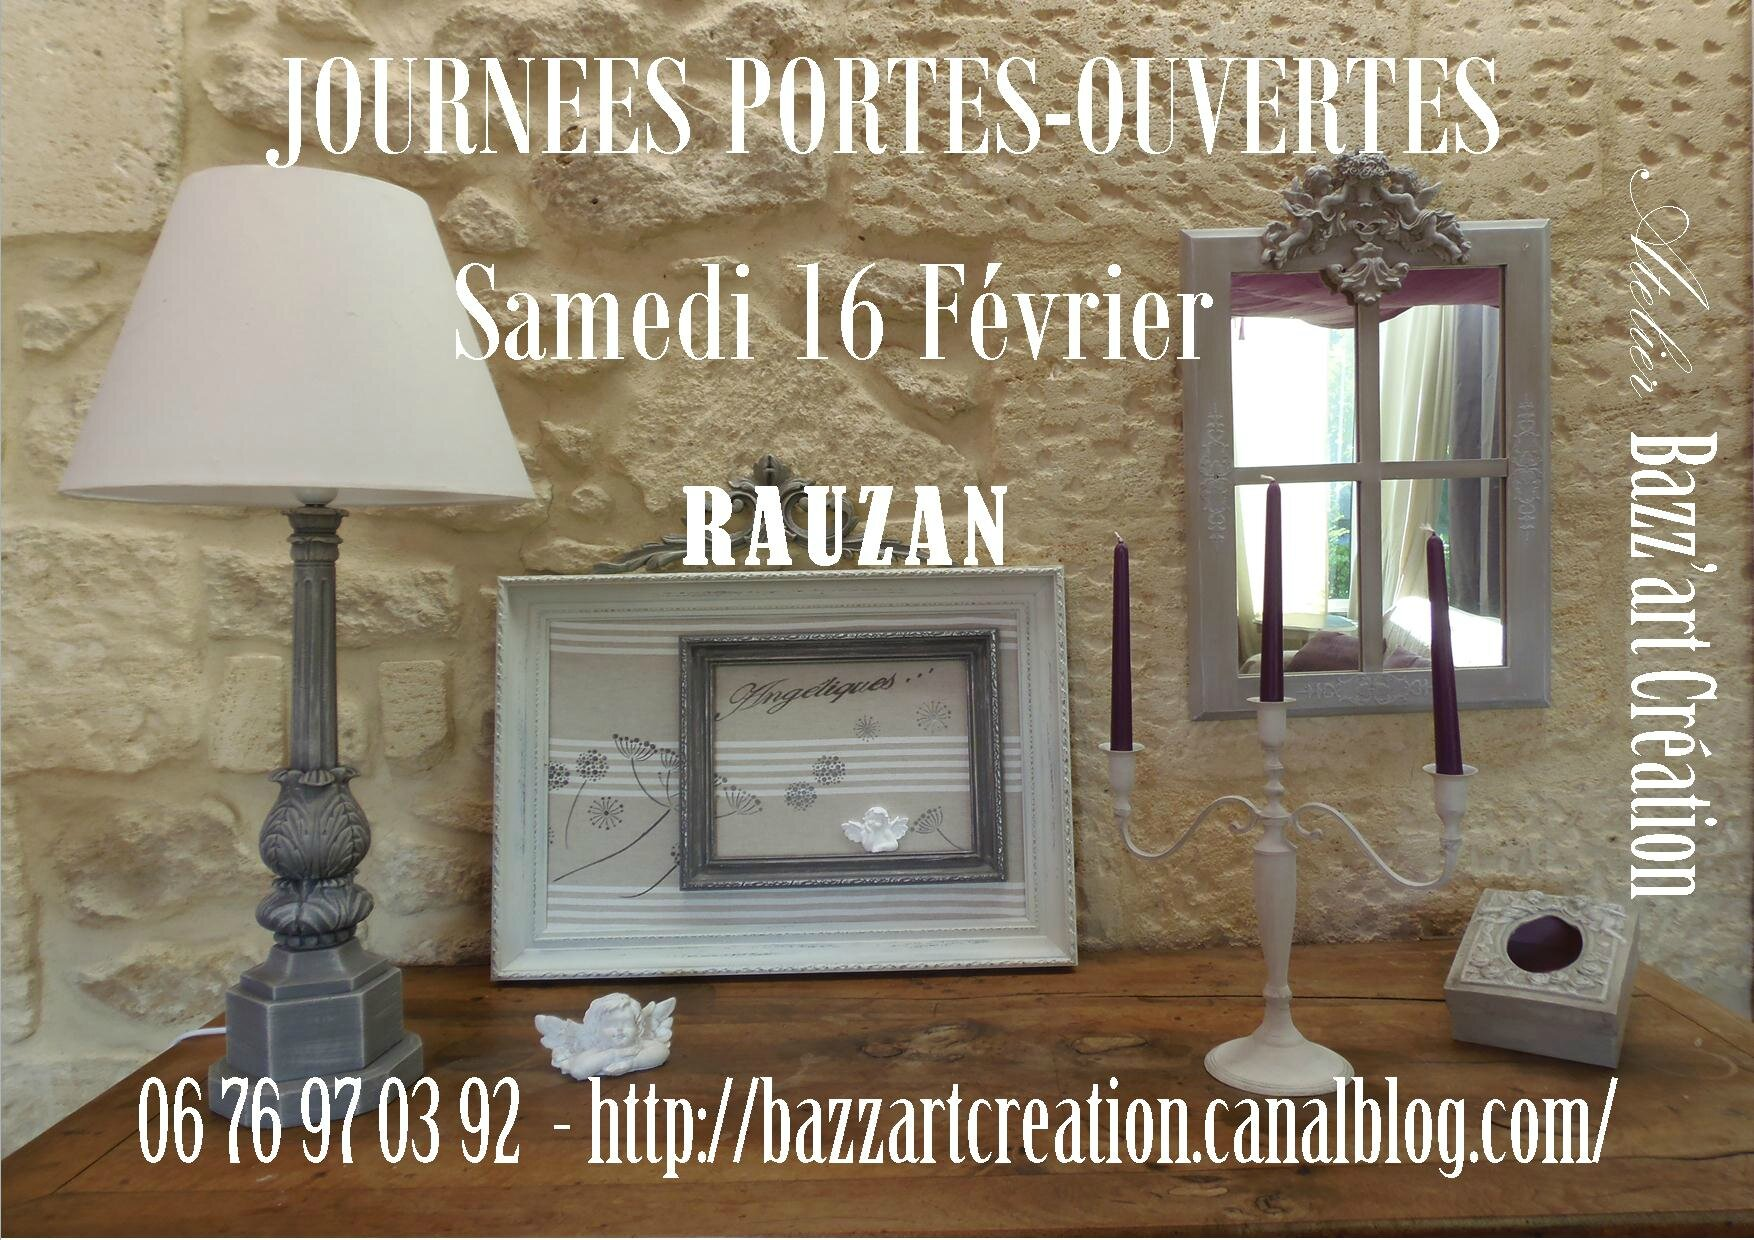 pochoirs en relief tous les messages sur pochoirs en relief bazz 39 art cr ation. Black Bedroom Furniture Sets. Home Design Ideas